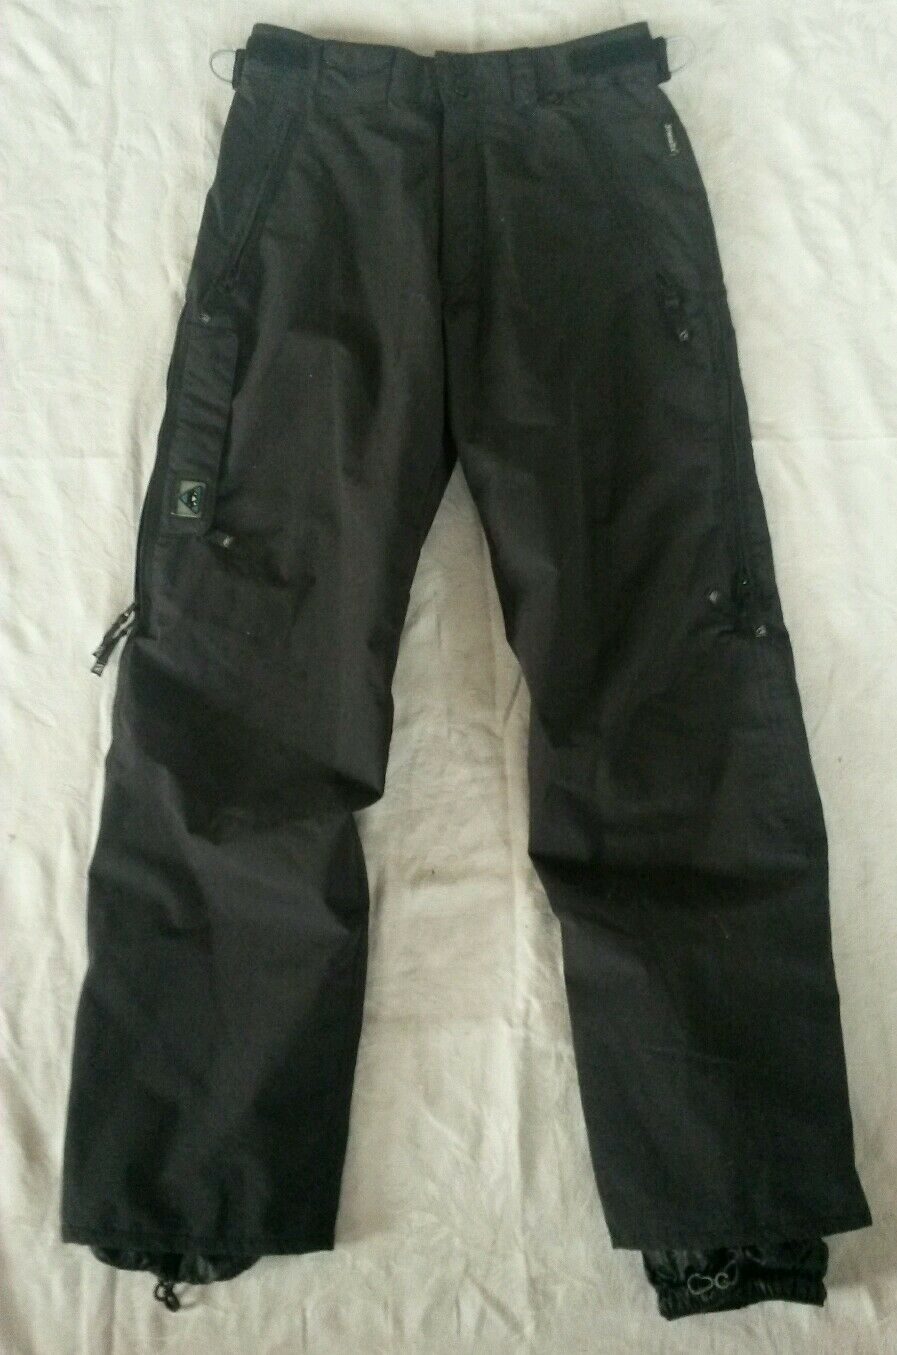 Great, K2 Outerwear pants,Sympa-tex,taped seams,leg vents,women M,ski snow board